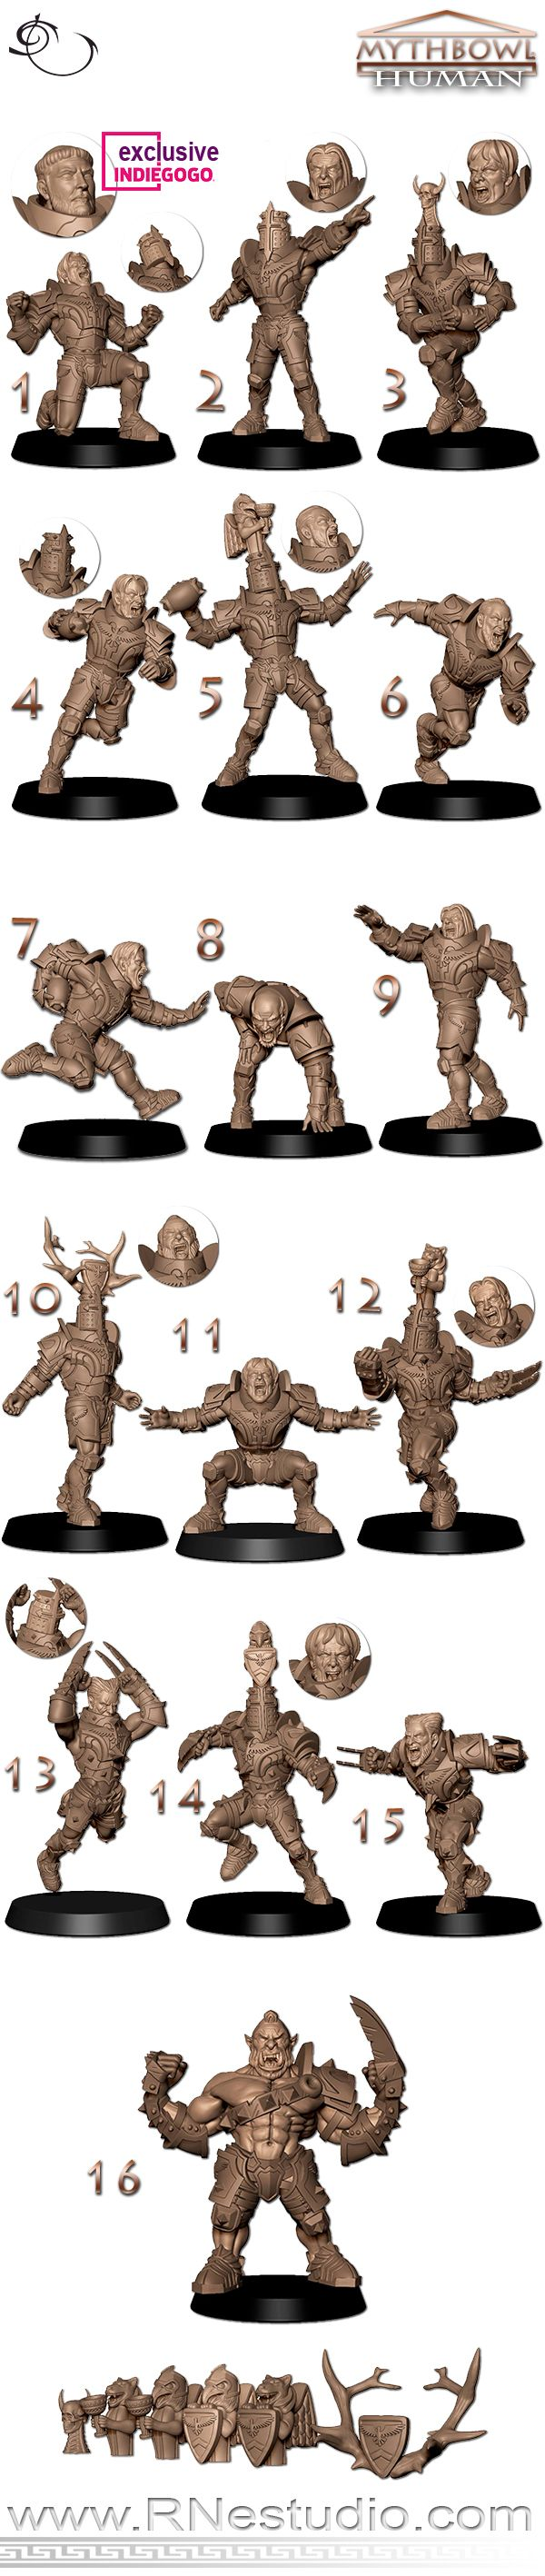 Help us to bring you the most amazings Humans&Orcs miniatures ever seen on a fantasy football field. | Crowdfunding is a democratic way to support the fundraising needs of your community. Make a contribution today!